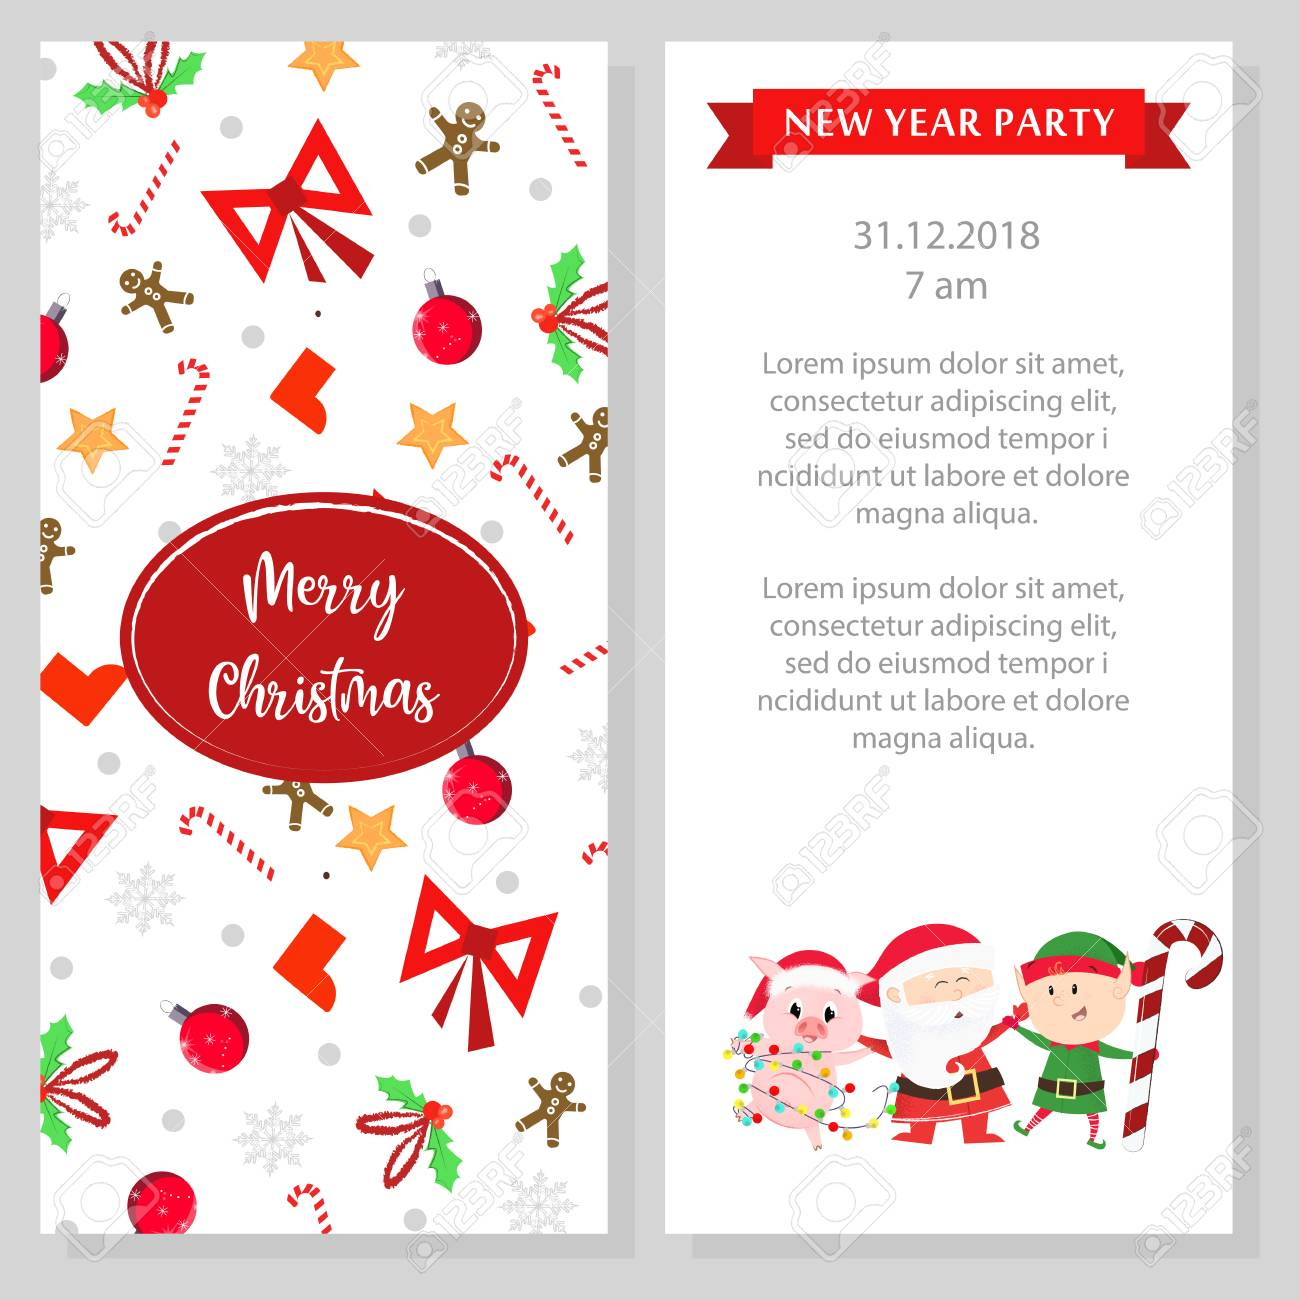 New Year Party Program Design White Booklet With Cartoon Characters